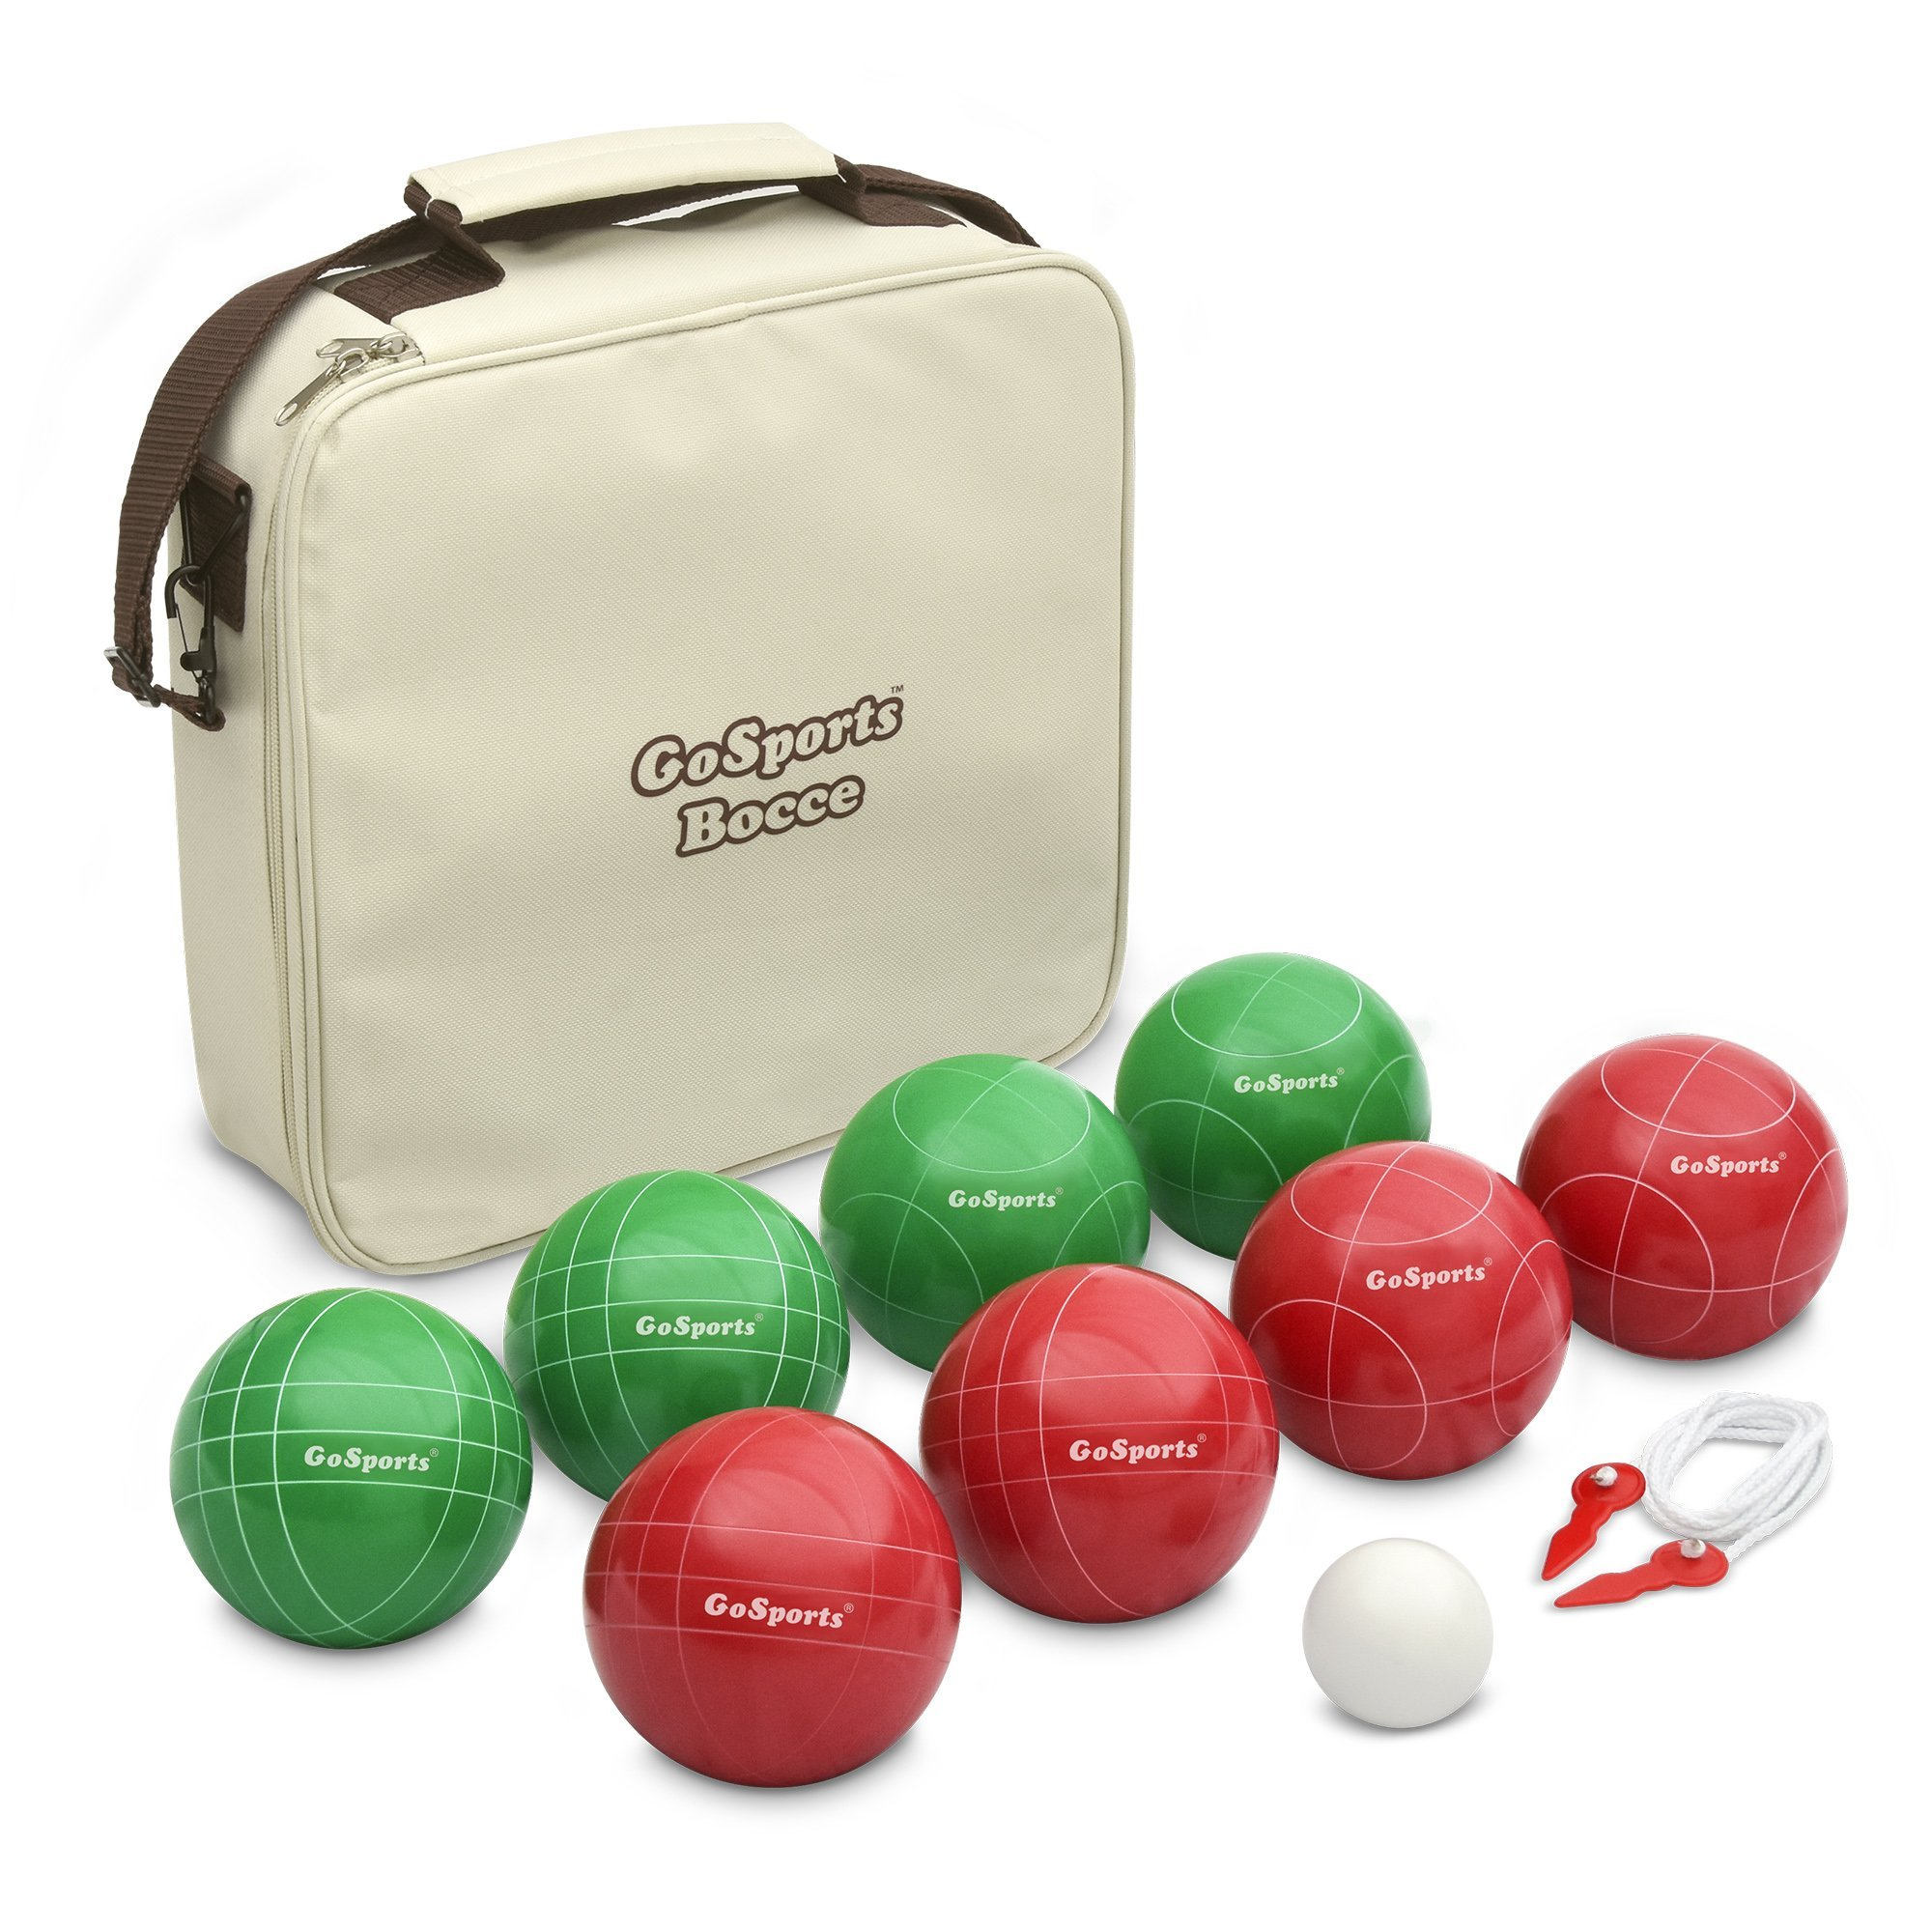 GoSports 100mm Regulation Bocce Set with 8 Balls, Pallino, Case and Measuring Rope - Premium Official Size Set by GoSports